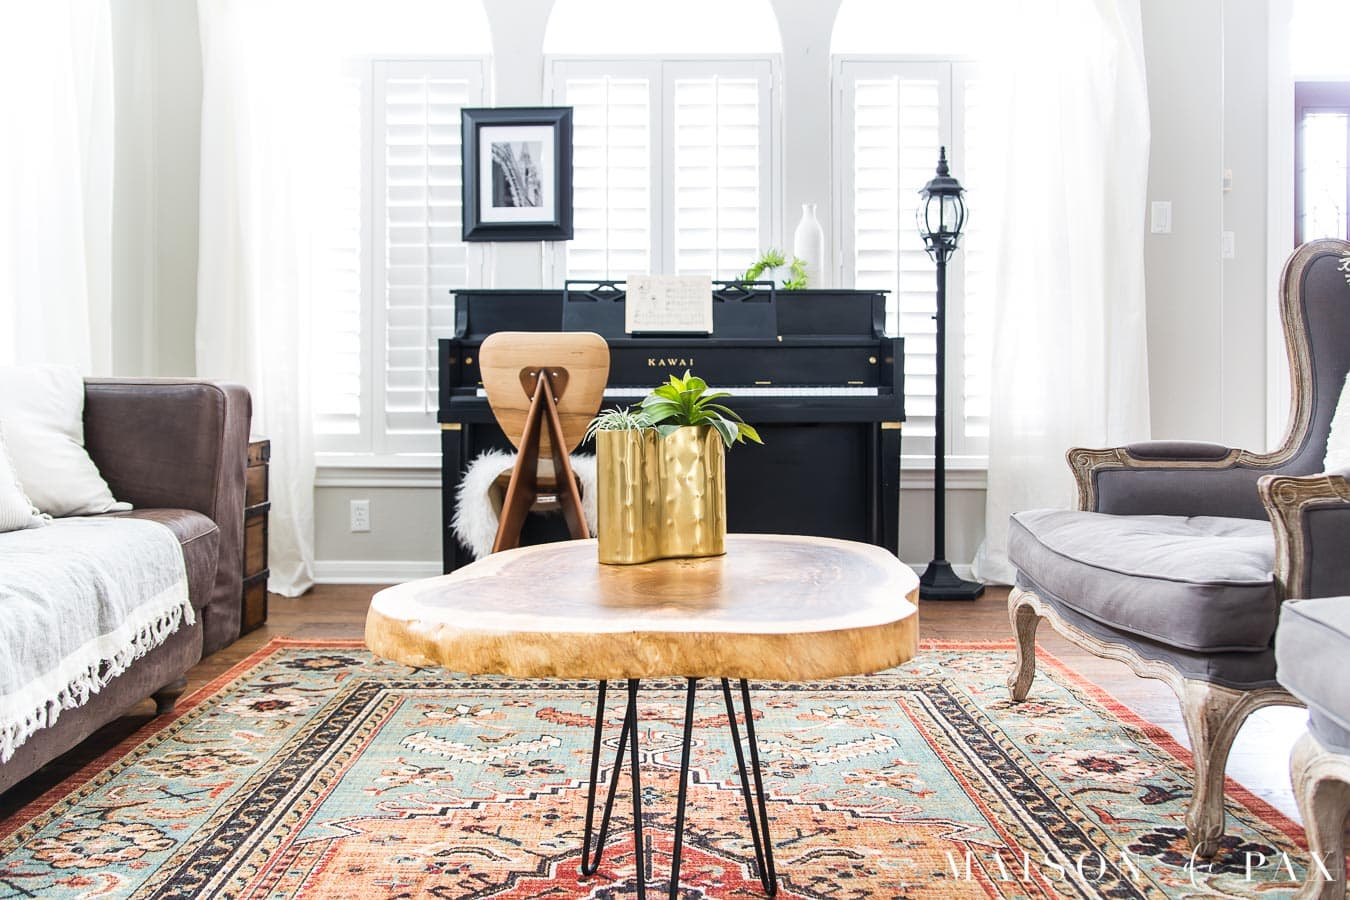 colorful vintage rug in eclectic living room | Maison de Pax